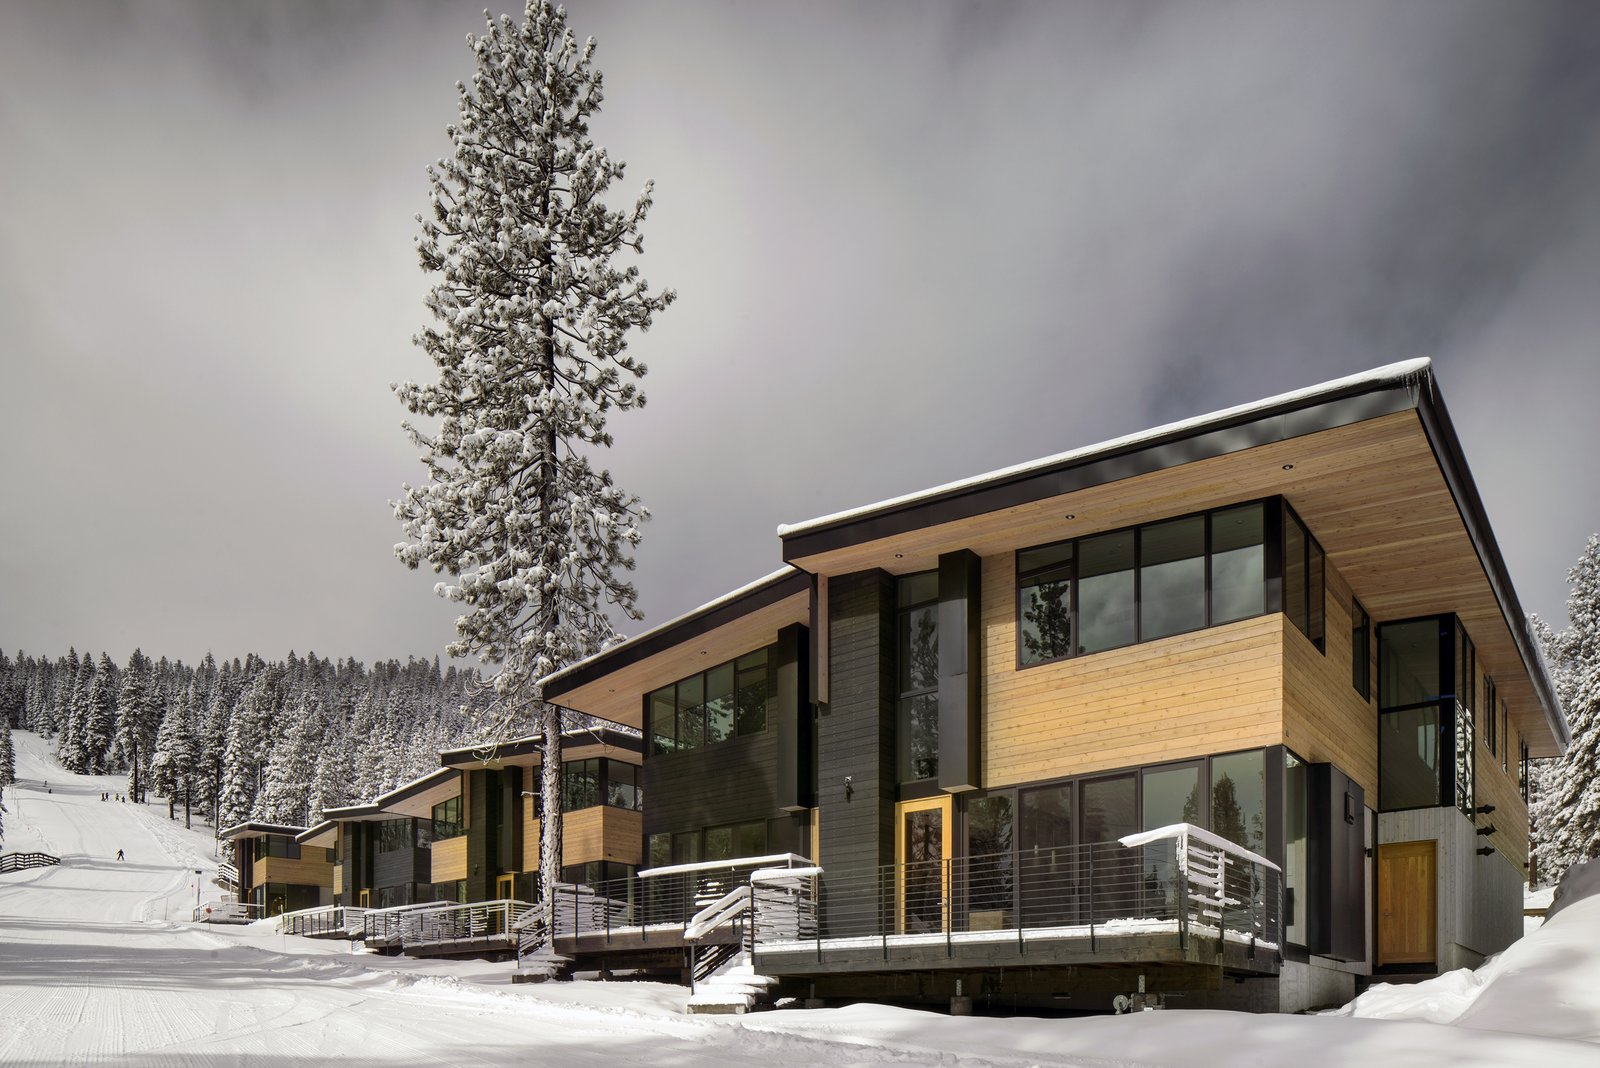 These contemporary lake tahoe chalets have ski in ski out access